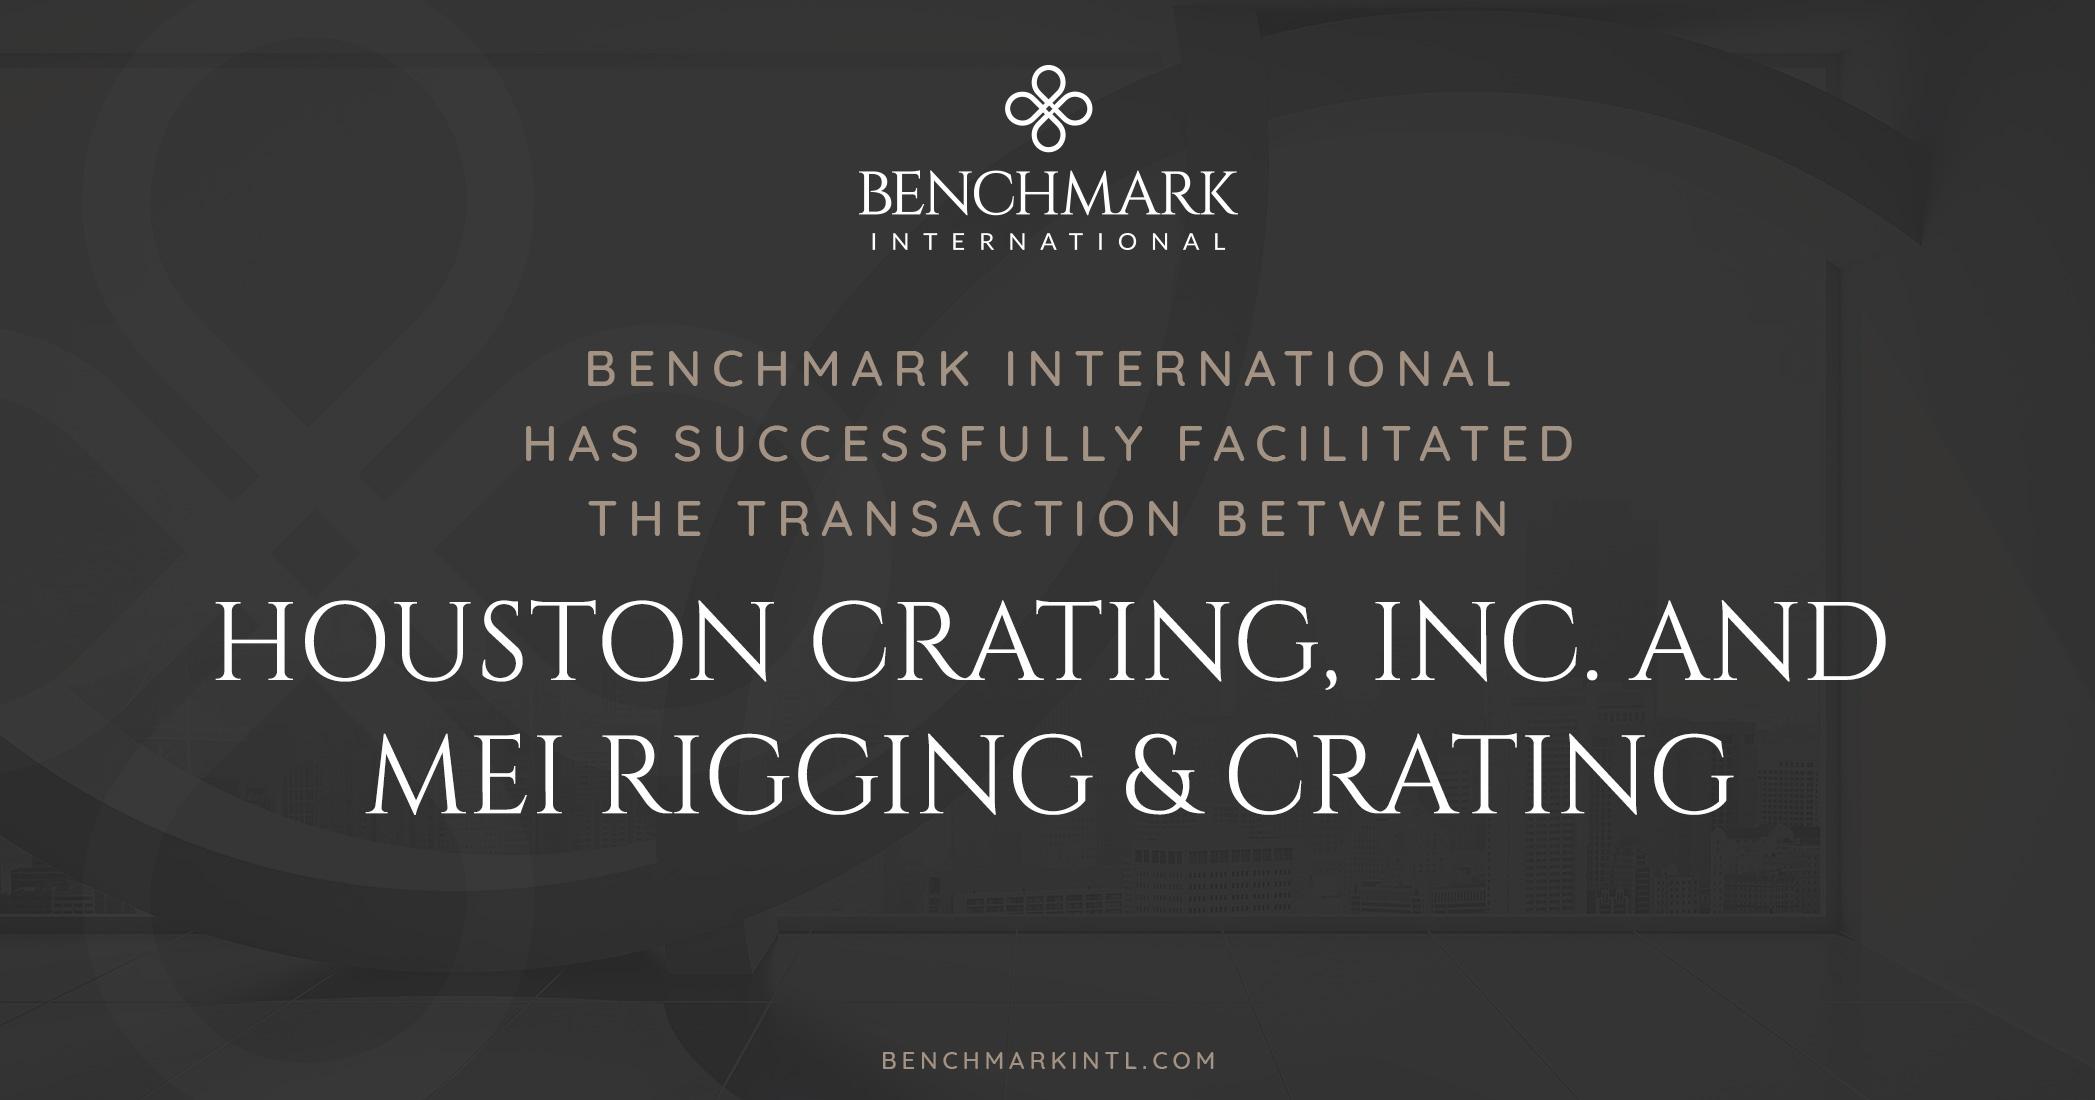 Benchmark International Successfully Facilitated the Transaction Between Houston Crating, Inc. and MEI Rigging & Crating